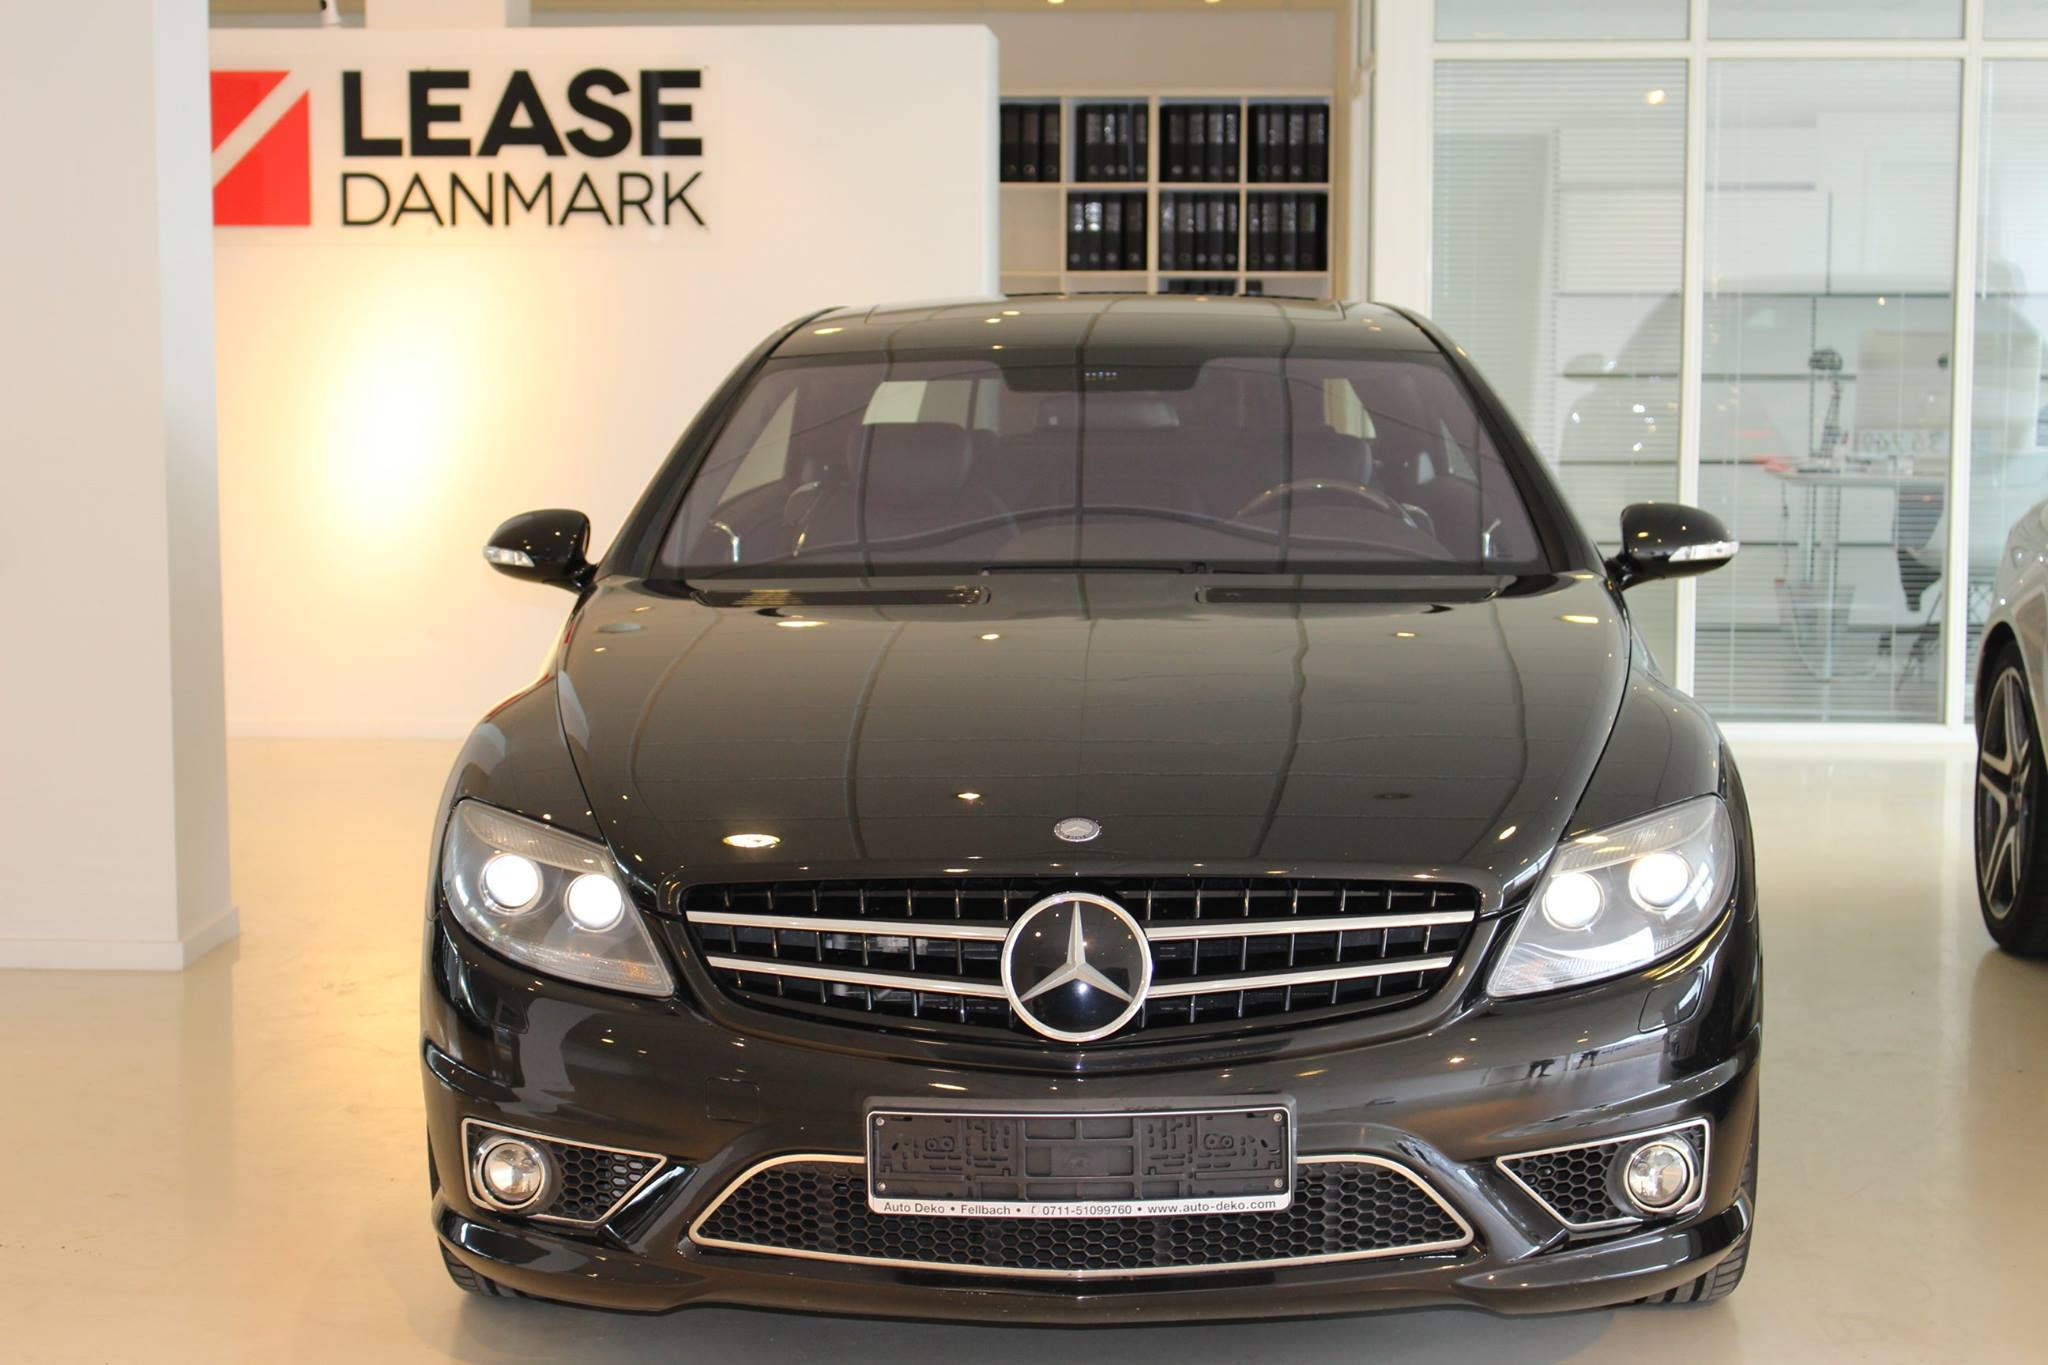 mercedes benz cl63 amg lease danmark. Black Bedroom Furniture Sets. Home Design Ideas